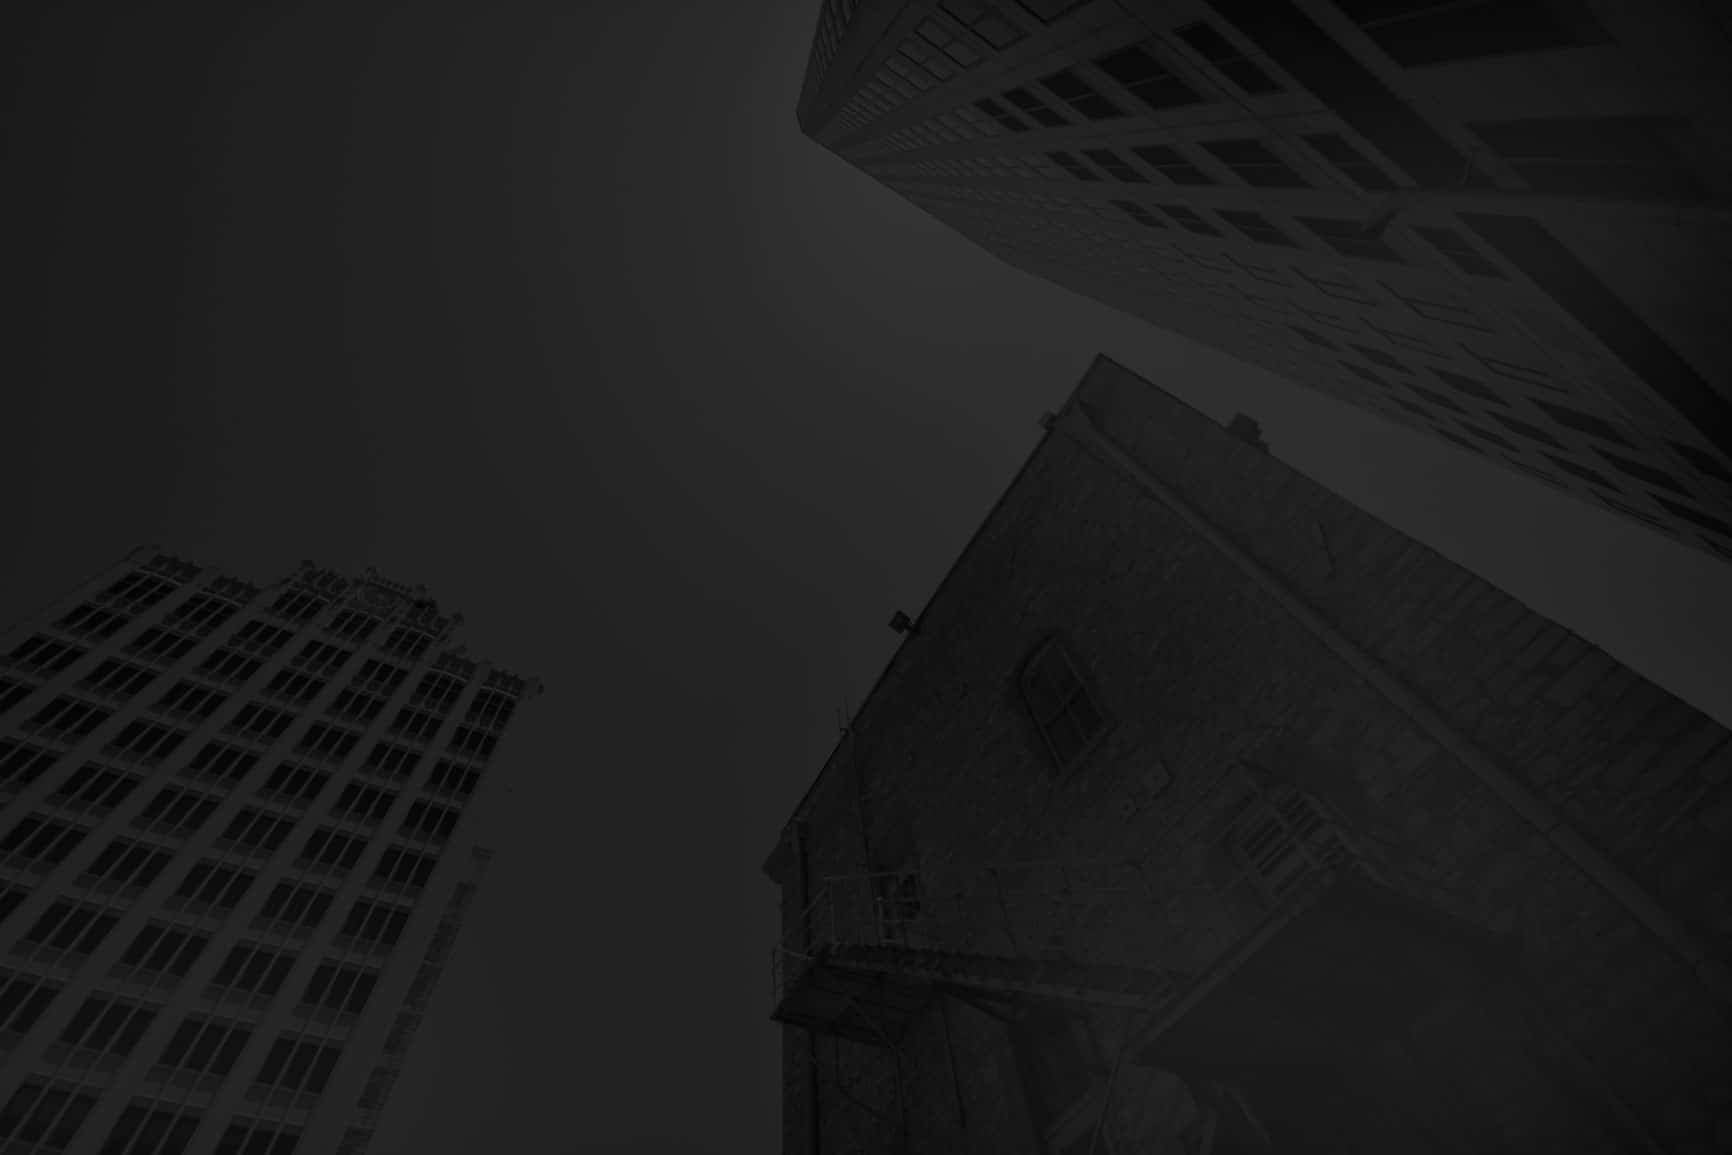 payroll services imagery in downtown austin tx